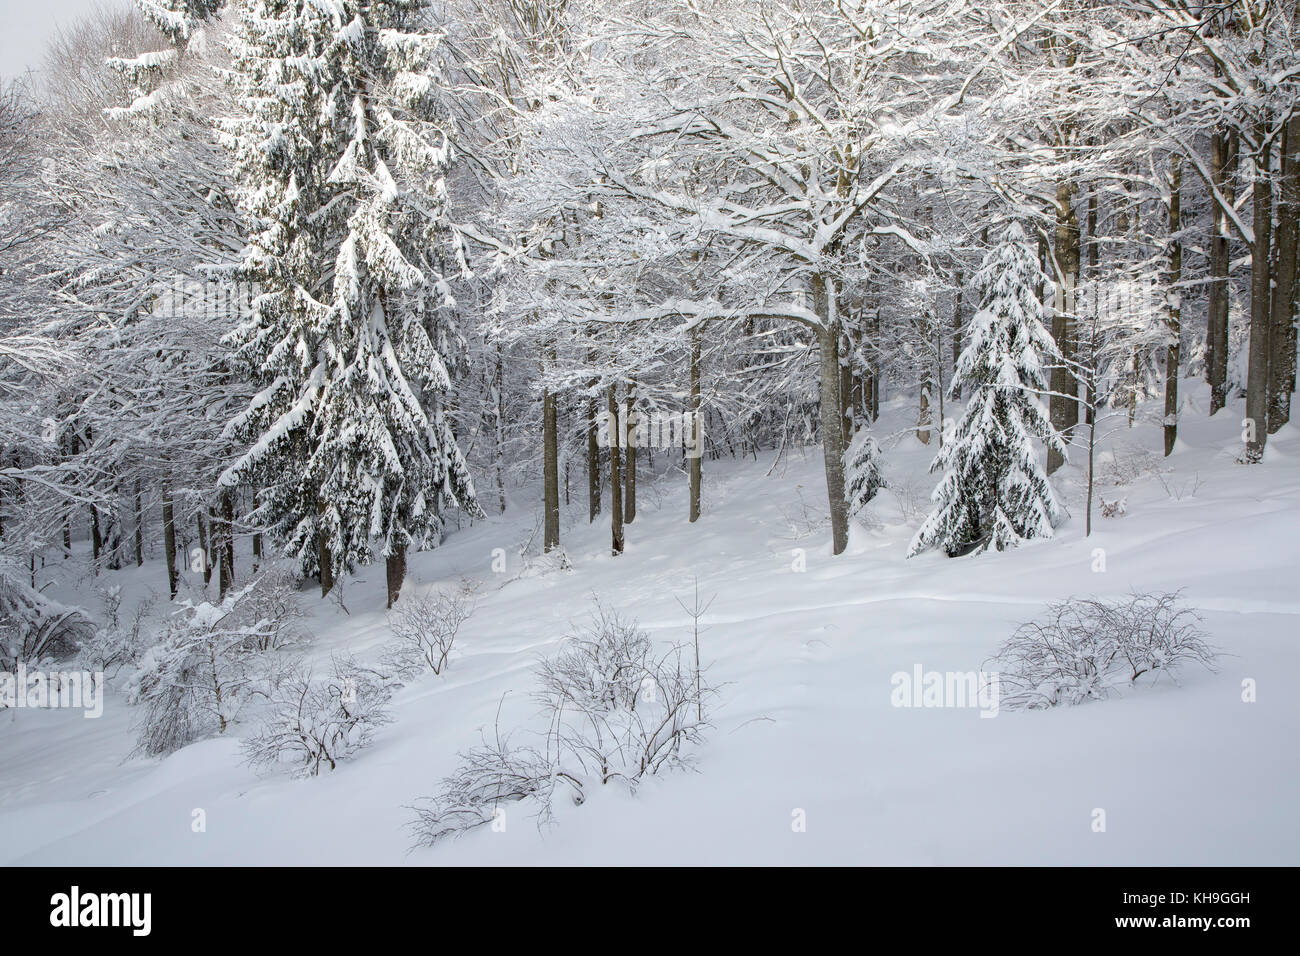 Branches of beech trees (Fagus sylvatica) and spruces laden with fresh snow after snowfall in winter Stock Photo